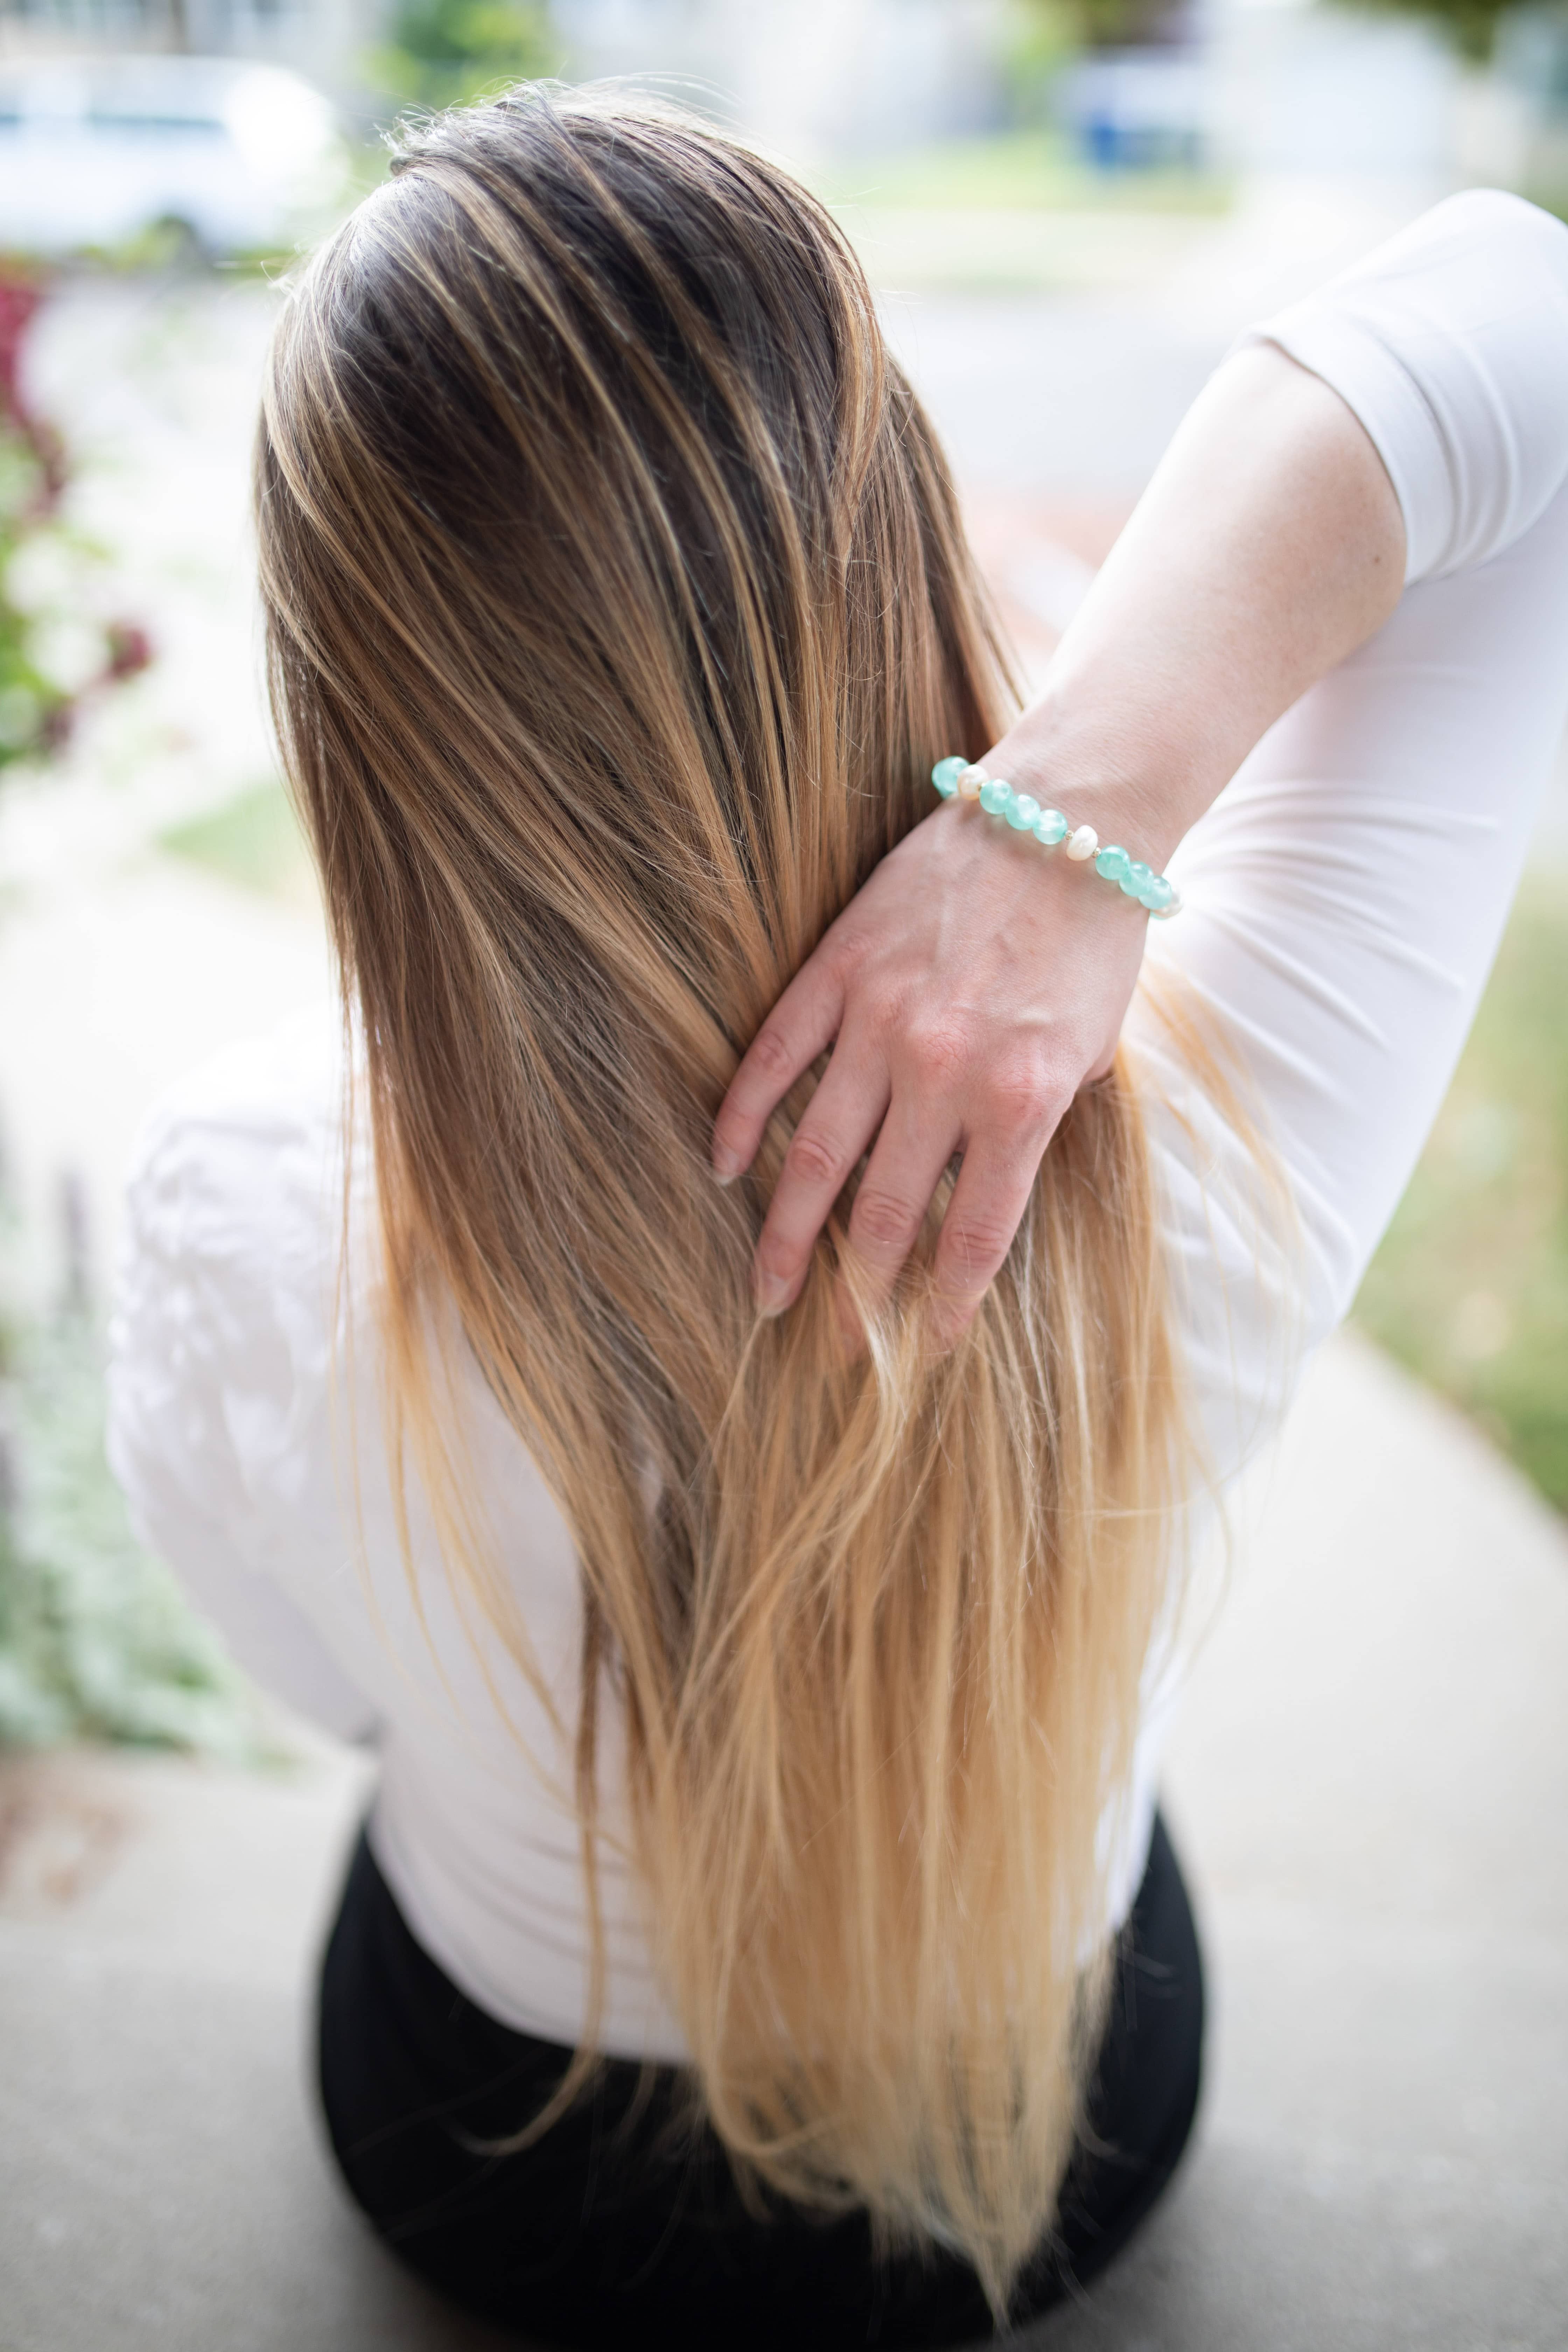 woman running her hand through the back of her hair